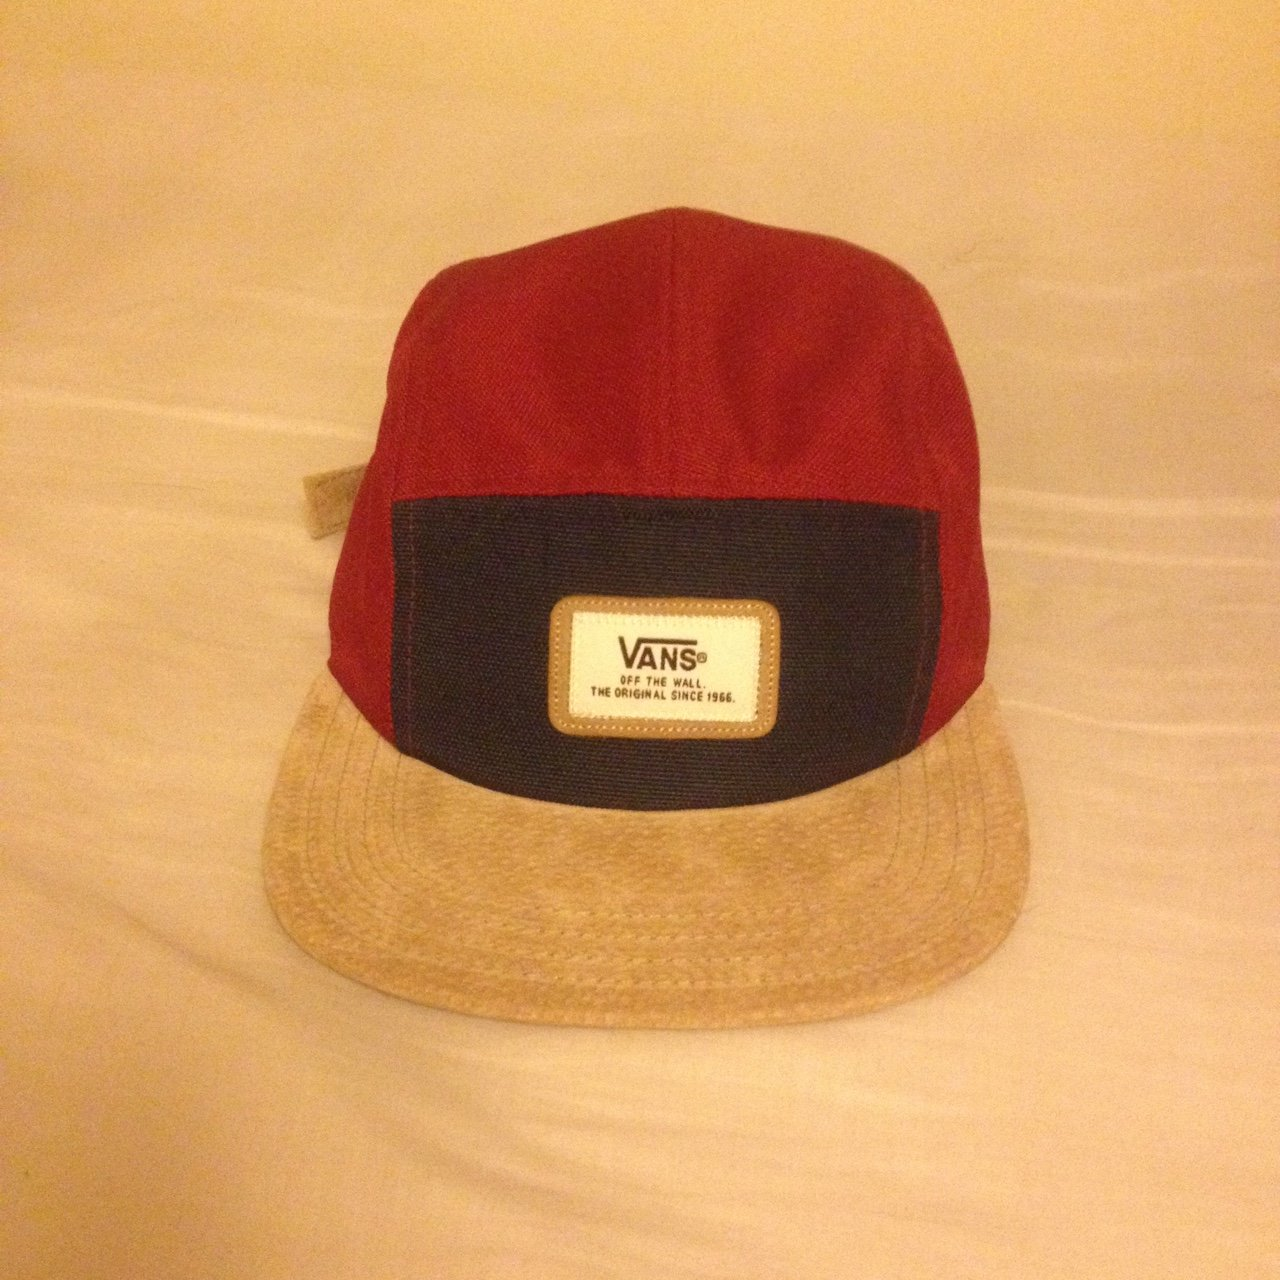 2a45bb012ca3b7 lacoste knitted hat,nike aerobill 99,nike af1 hat -  woolrichoutletonlinesales.com